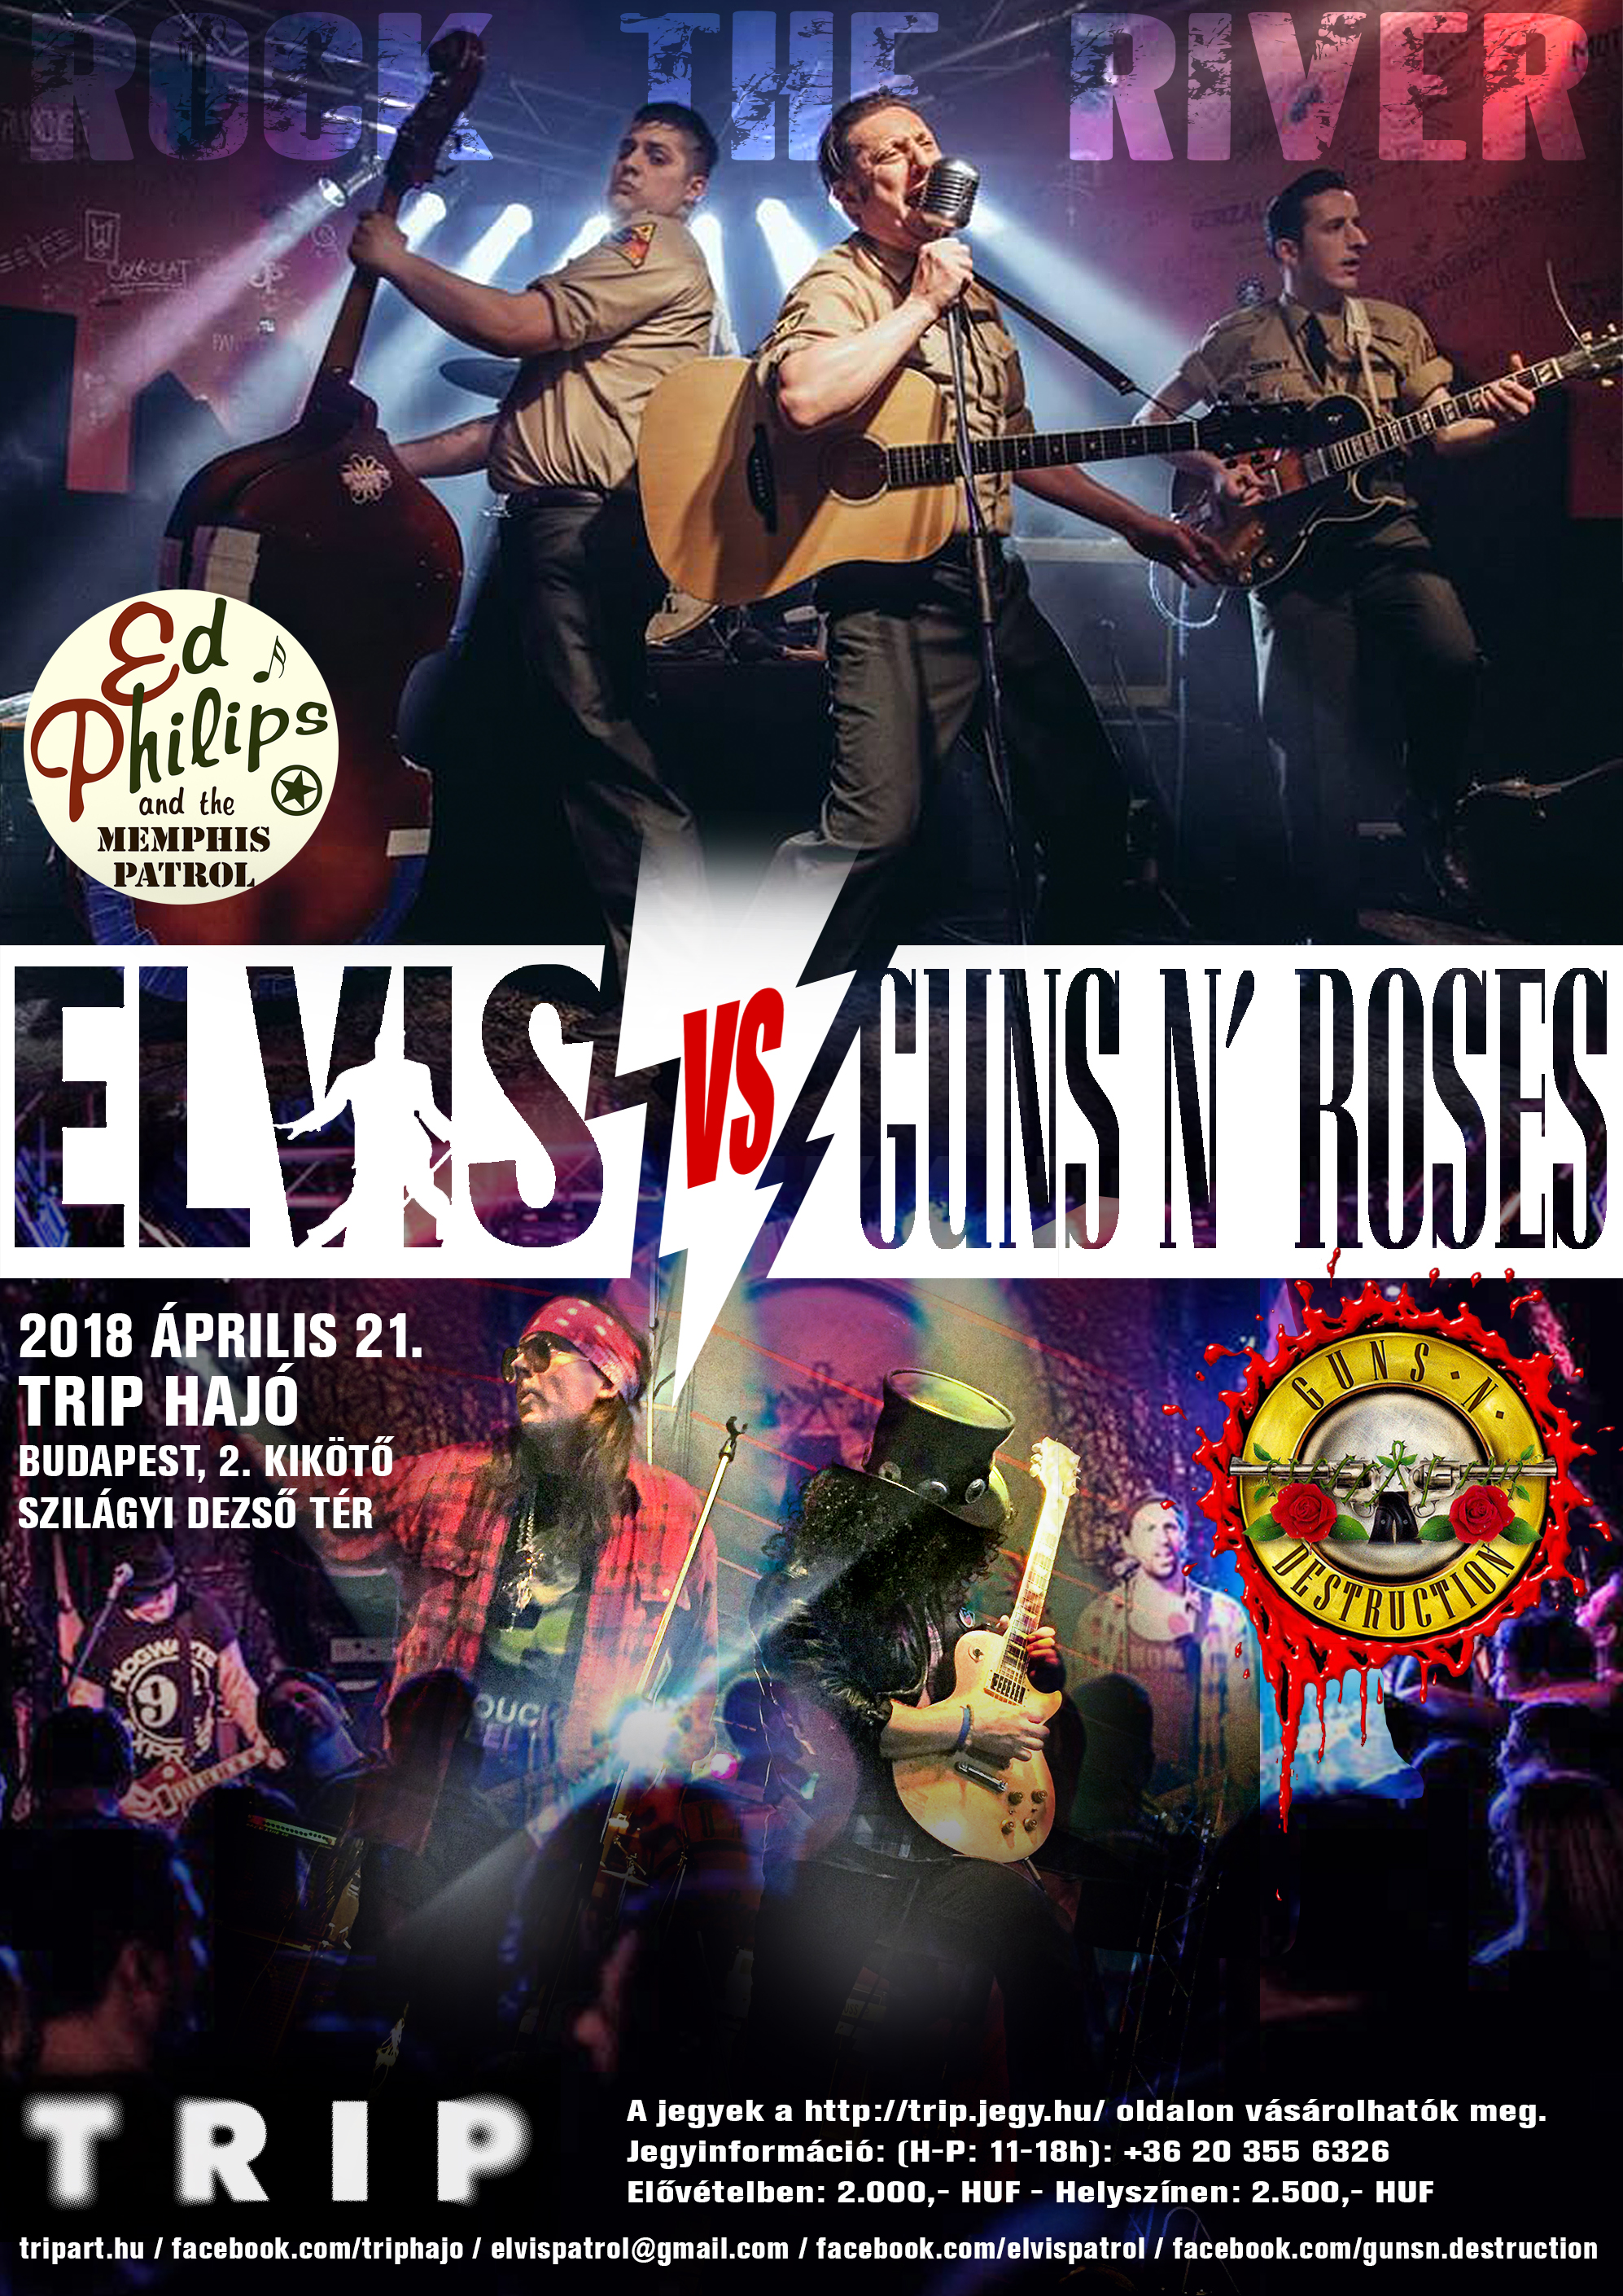 elvis_gunsnroses_flyer.jpg